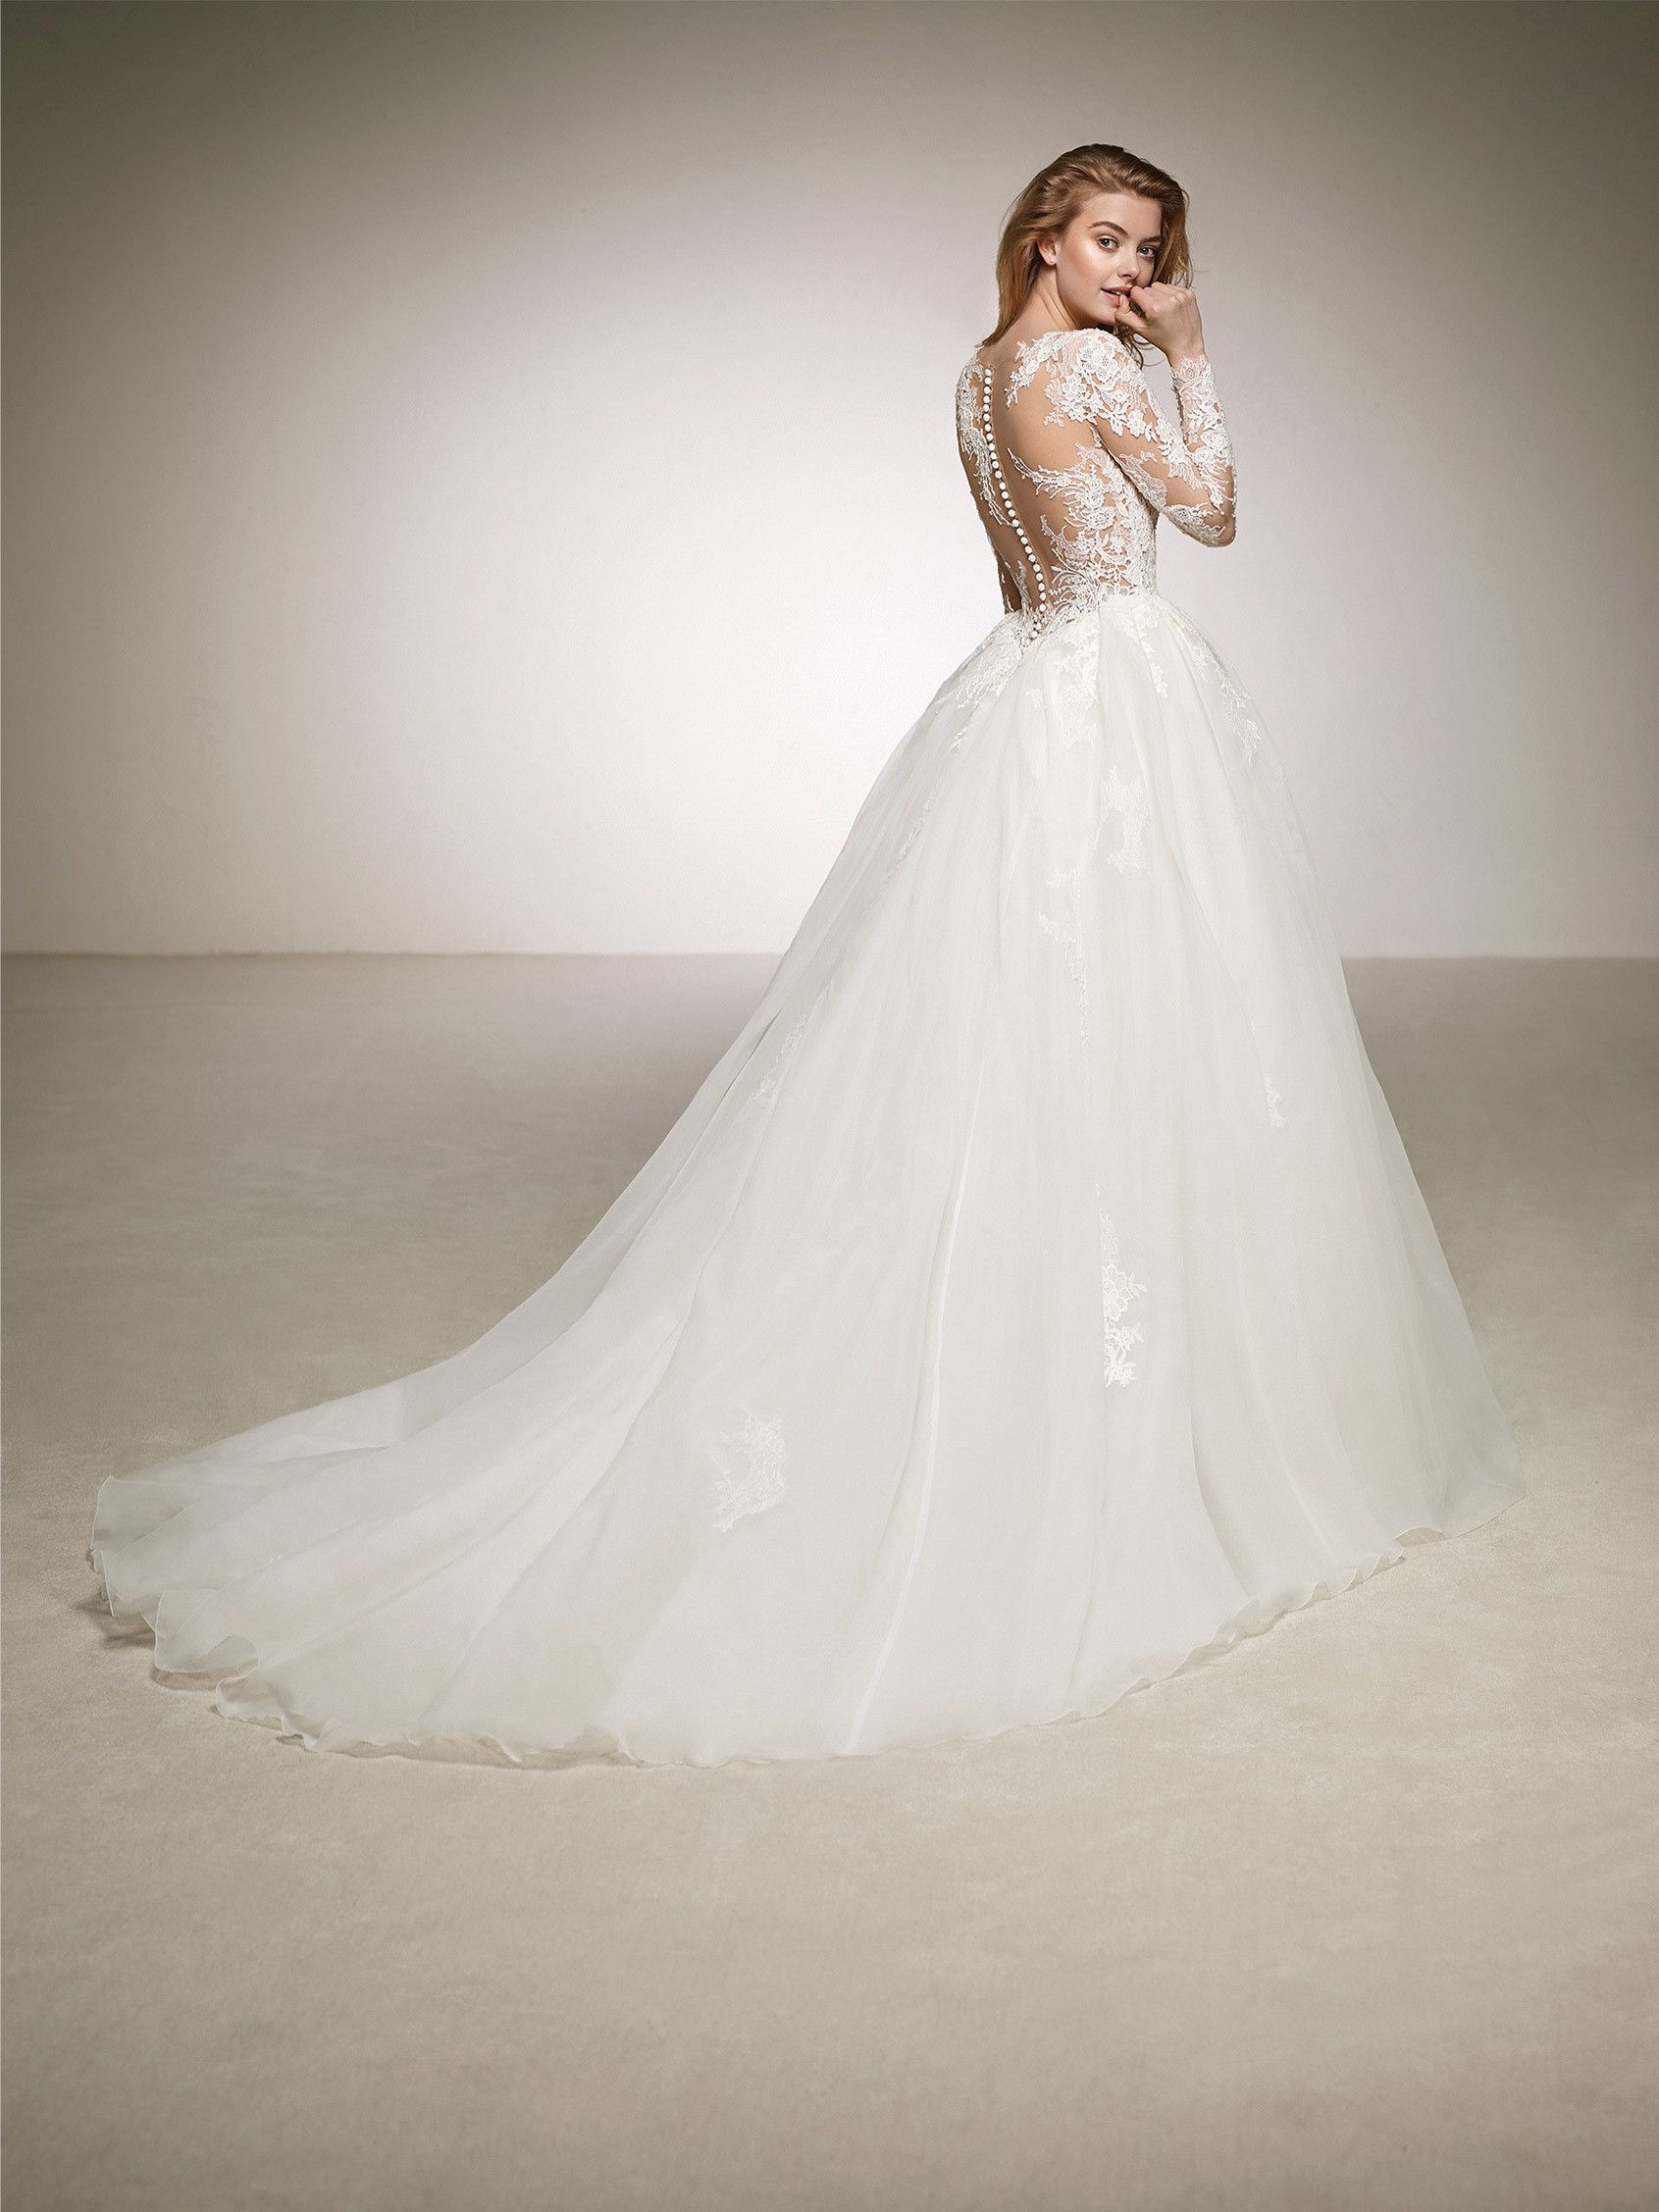 450c4a5e14 ... sleeve illusion bodice with lace appliqués. Spectacular wedding dress  full of contrasts. DINTEL